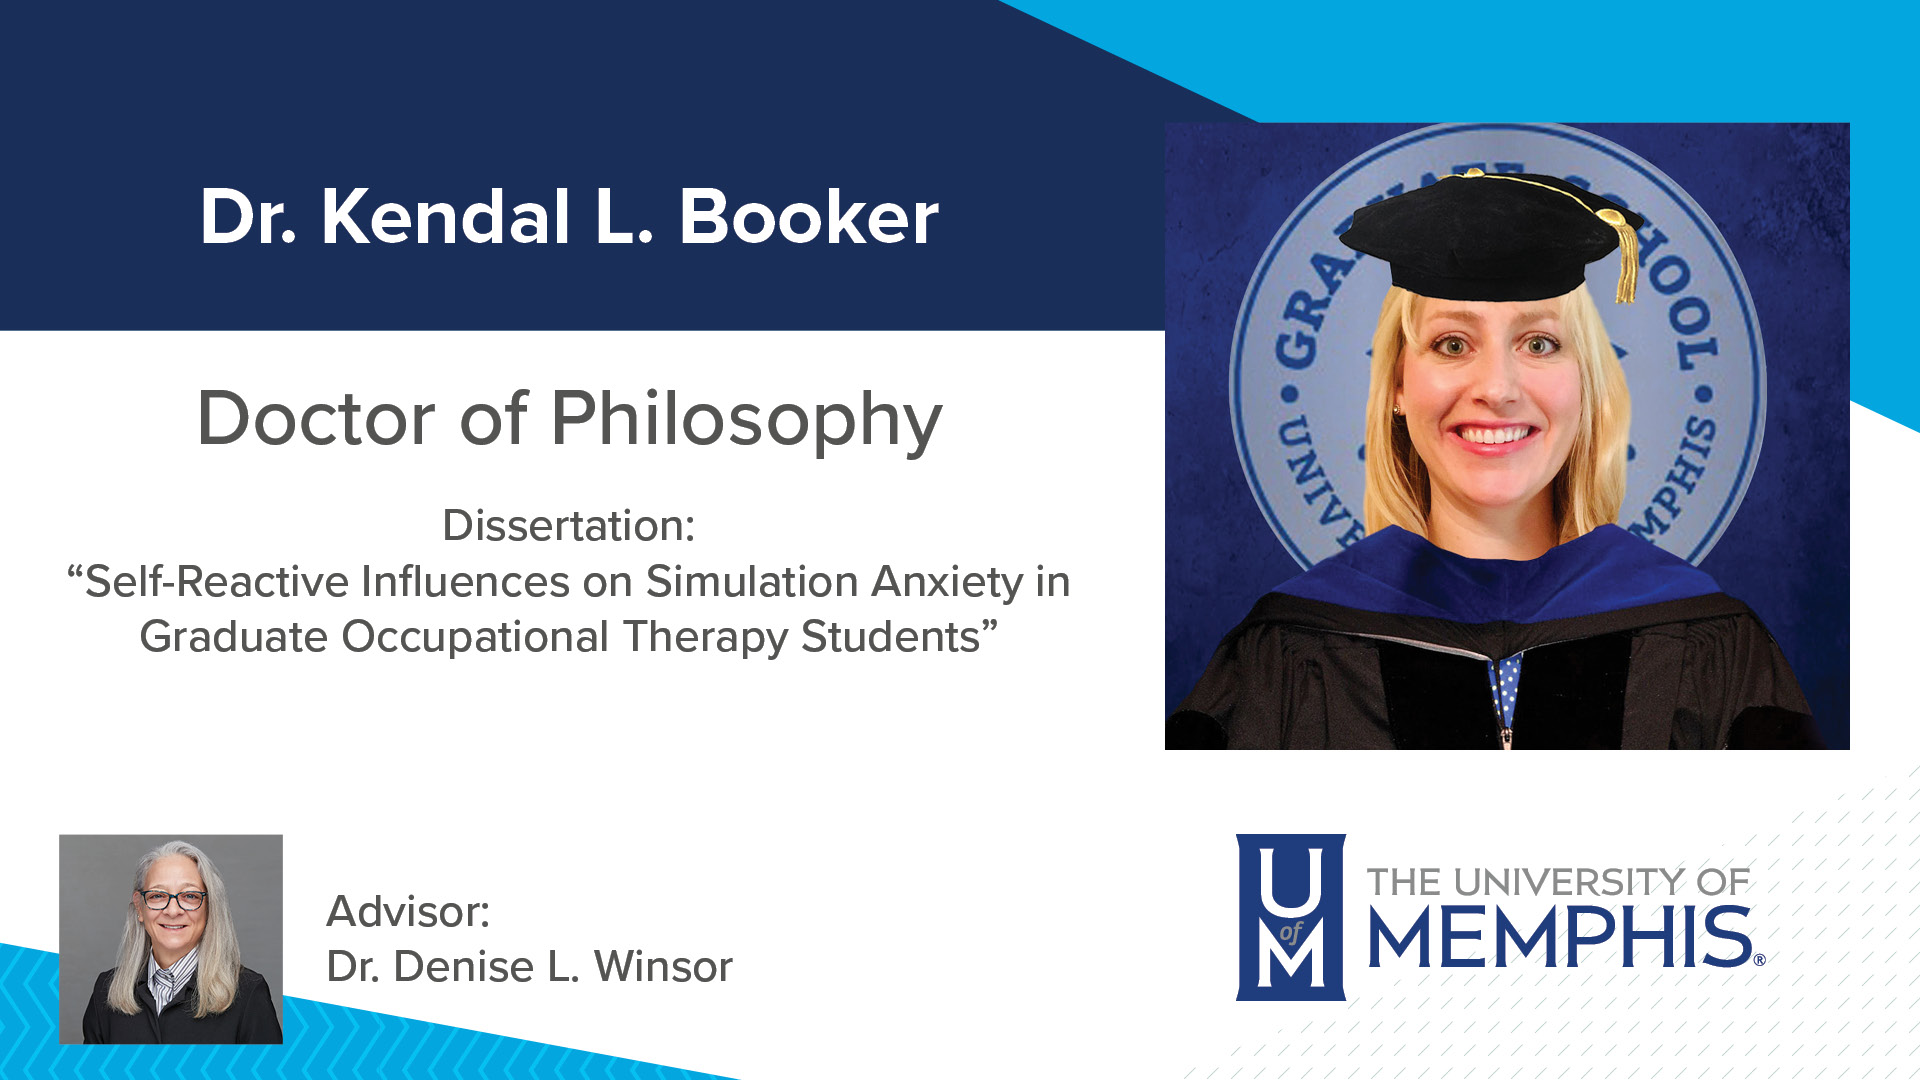 """Dr. Kendal L Booker Doctor of Philosophy Dissertation: """"Self-Reactive Influences on Simulation Anxiety in Graduate Occupational Therapy Students"""" Advisor: Dr. Denise L Winsor"""